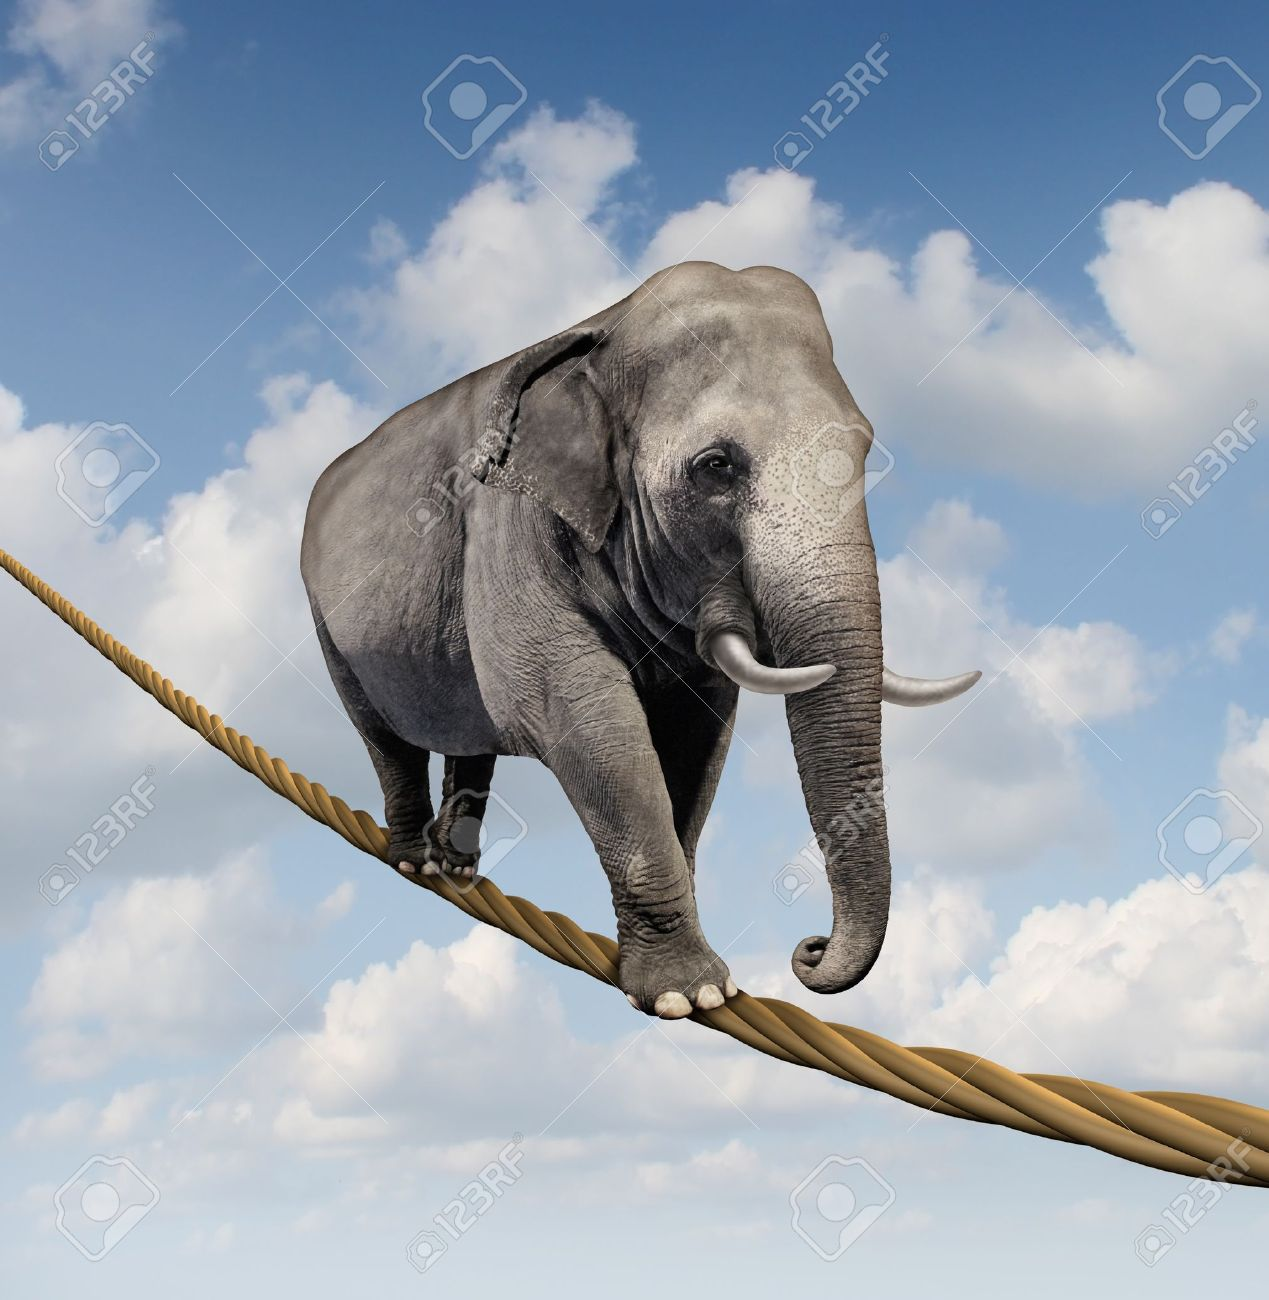 Managing risk and big business challenges and uncertainty with a large elephant walking on a dangerous rope high in the sky as a symbol of balance and overcoming fear for goal success Stock Photo - 16831822